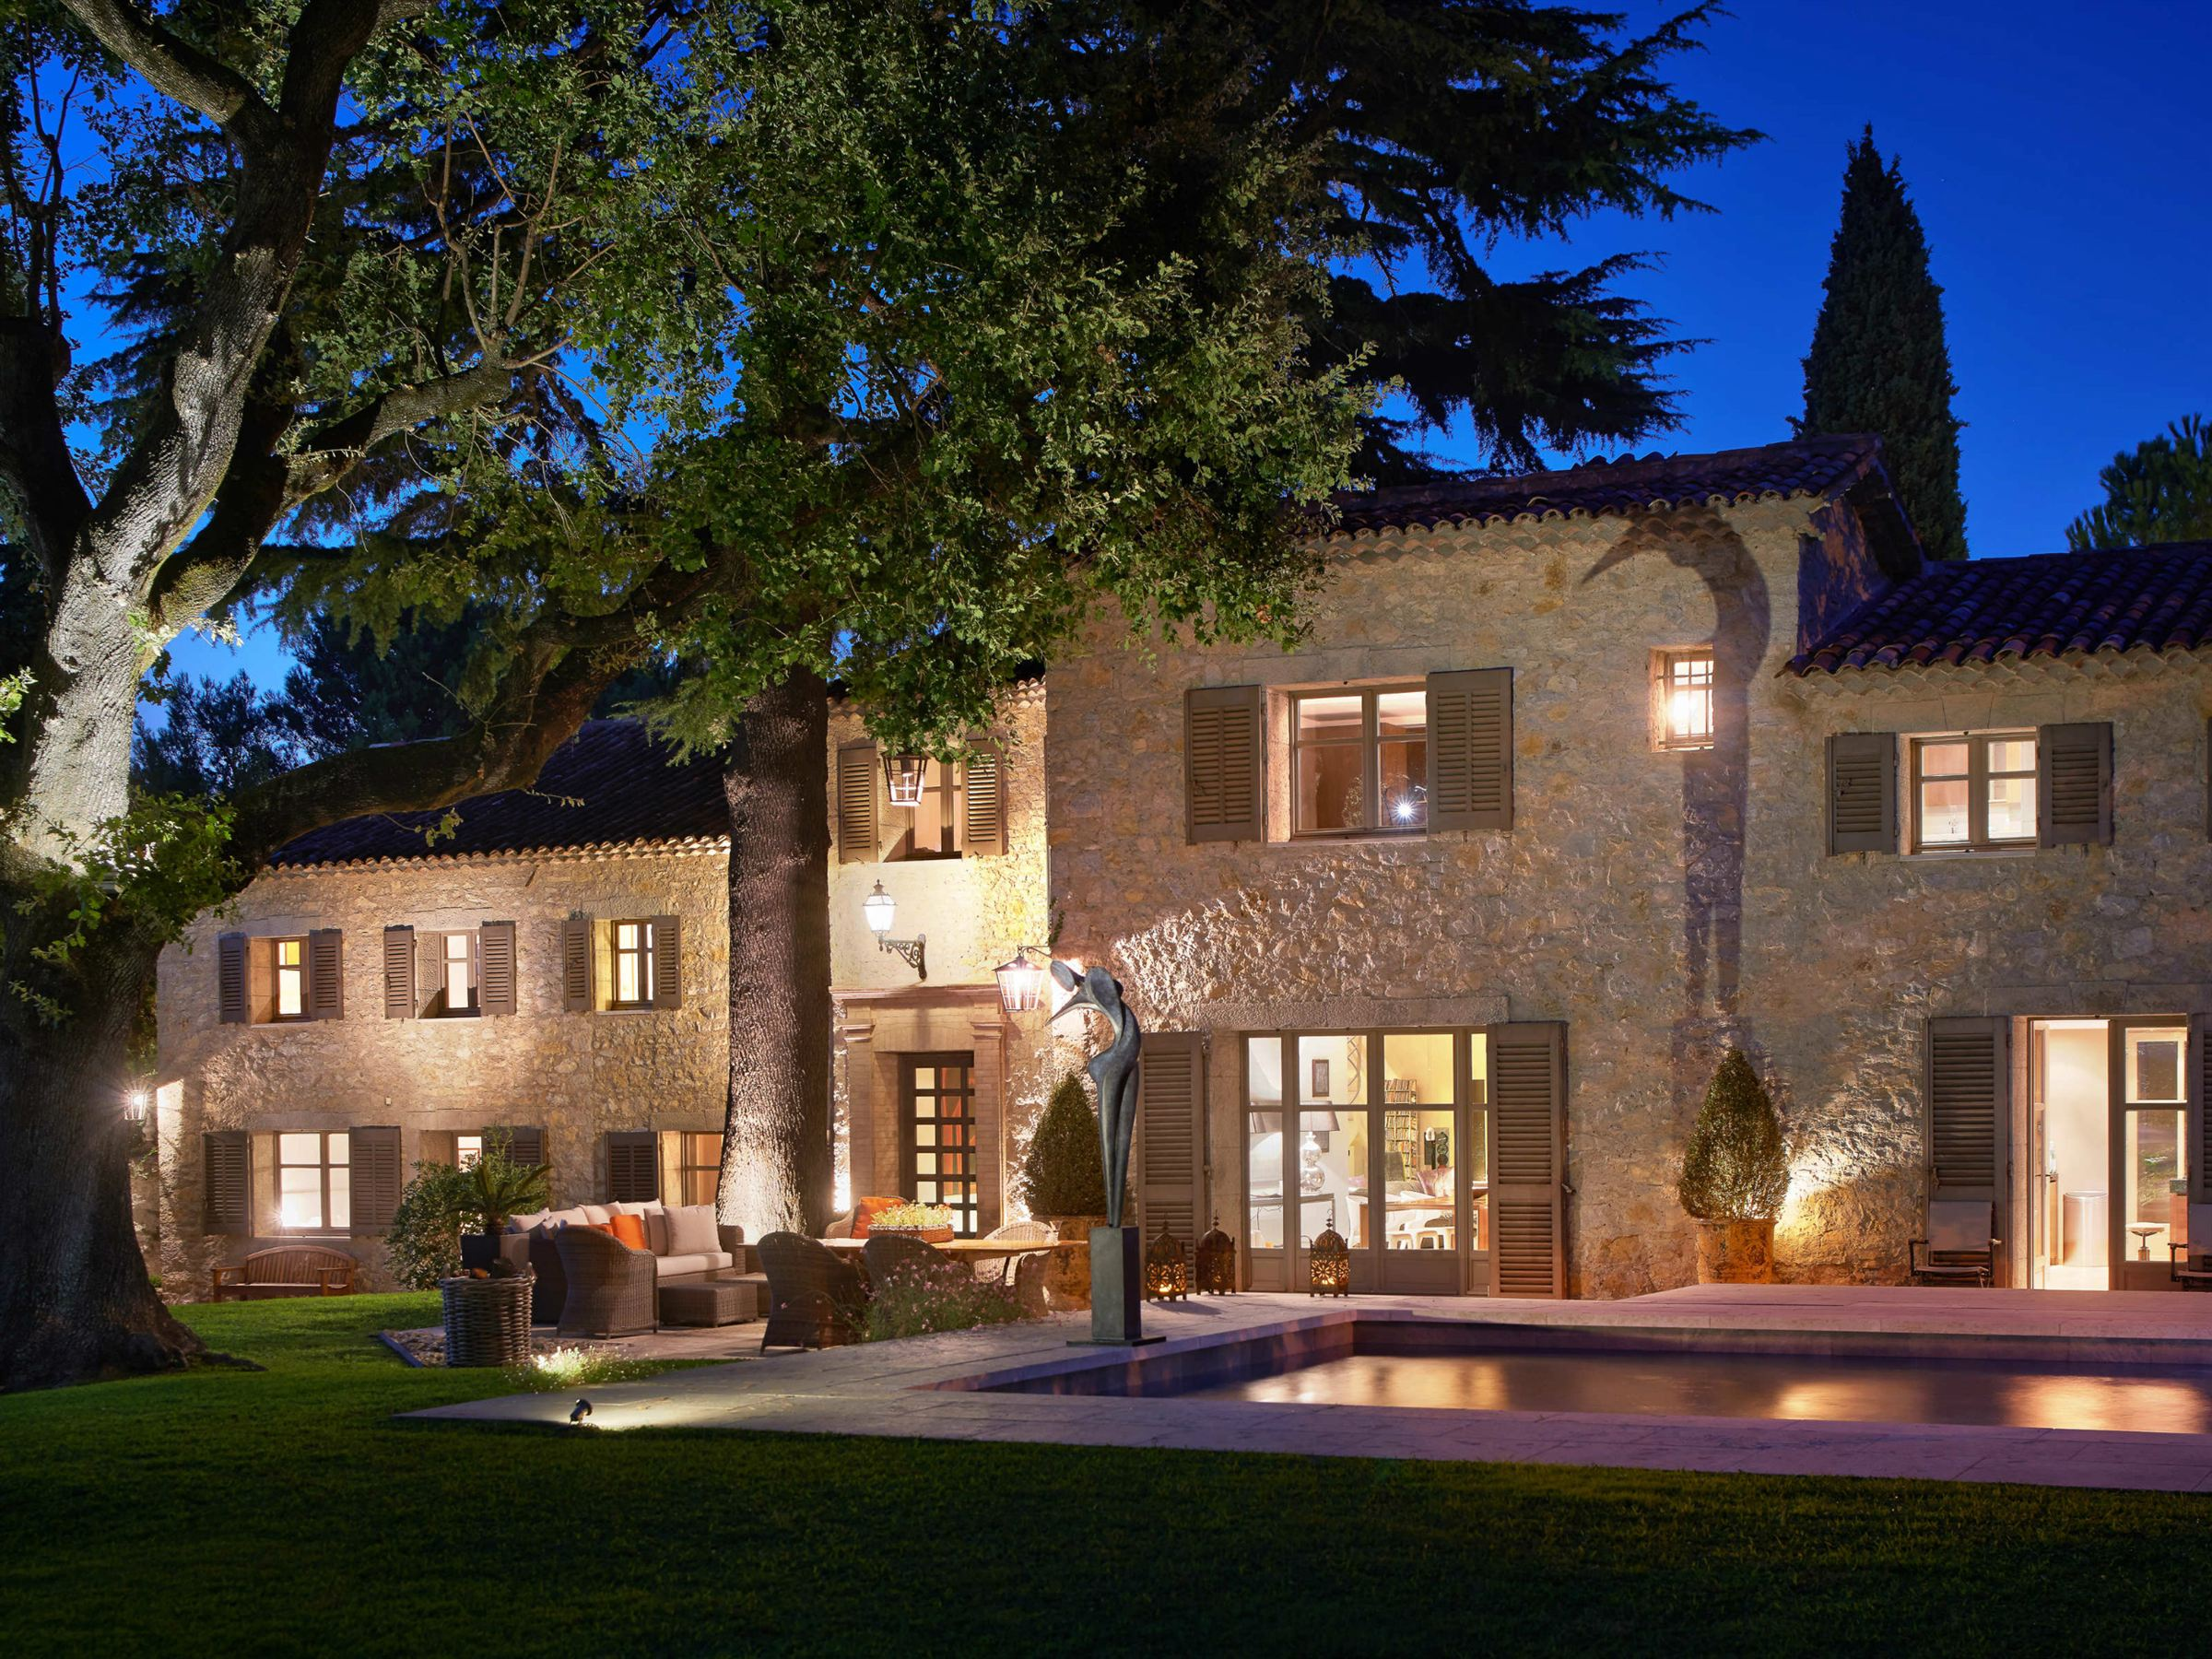 Single Family Home for Sale at Genuine Provencal manor house - Mougins Mougins, Provence-Alpes-Cote D'Azur, 06250 France